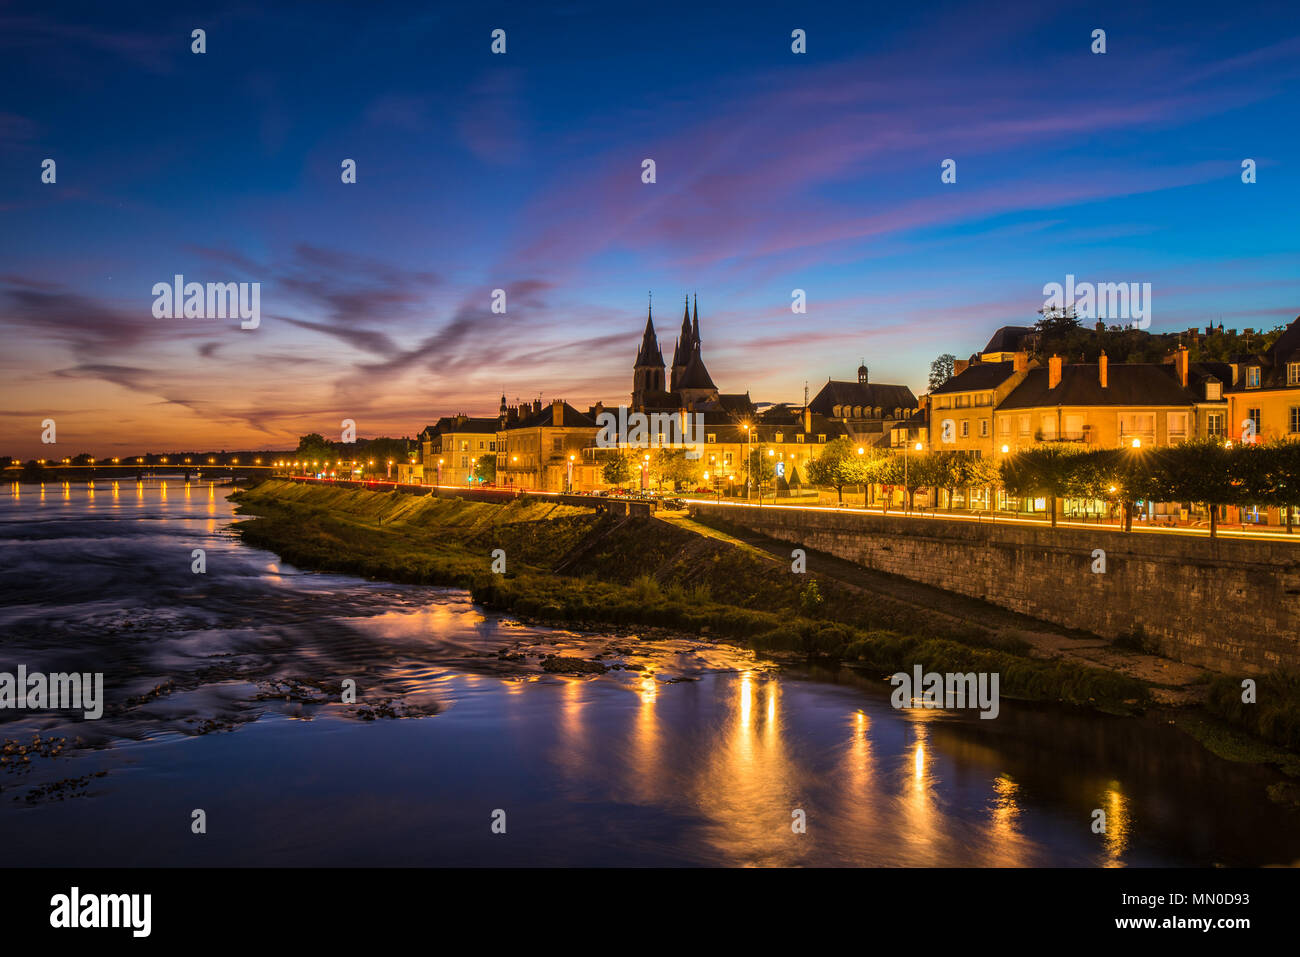 Sunset image of Blois and the Loire River, France - Stock Image